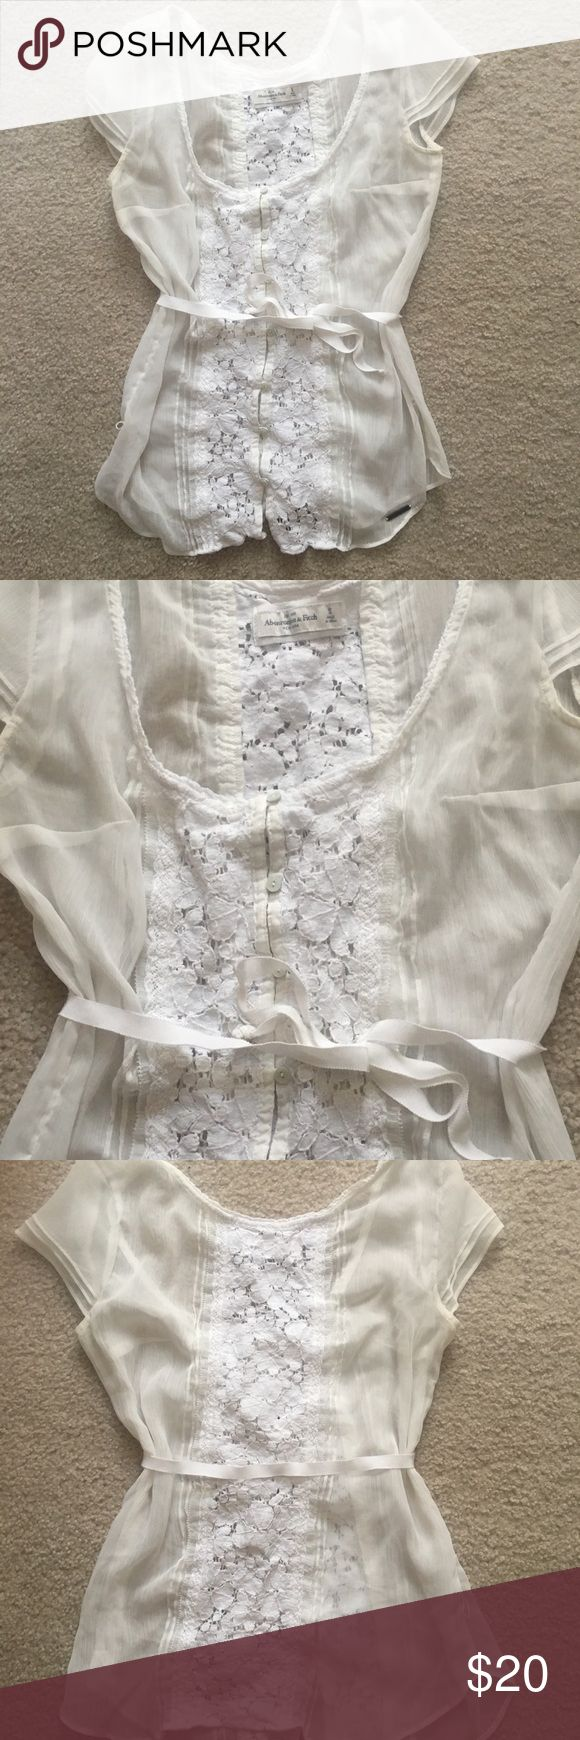 Lace sheet blouse Perfect for any occasion! Abercrombie & Fitch Tops Blouses